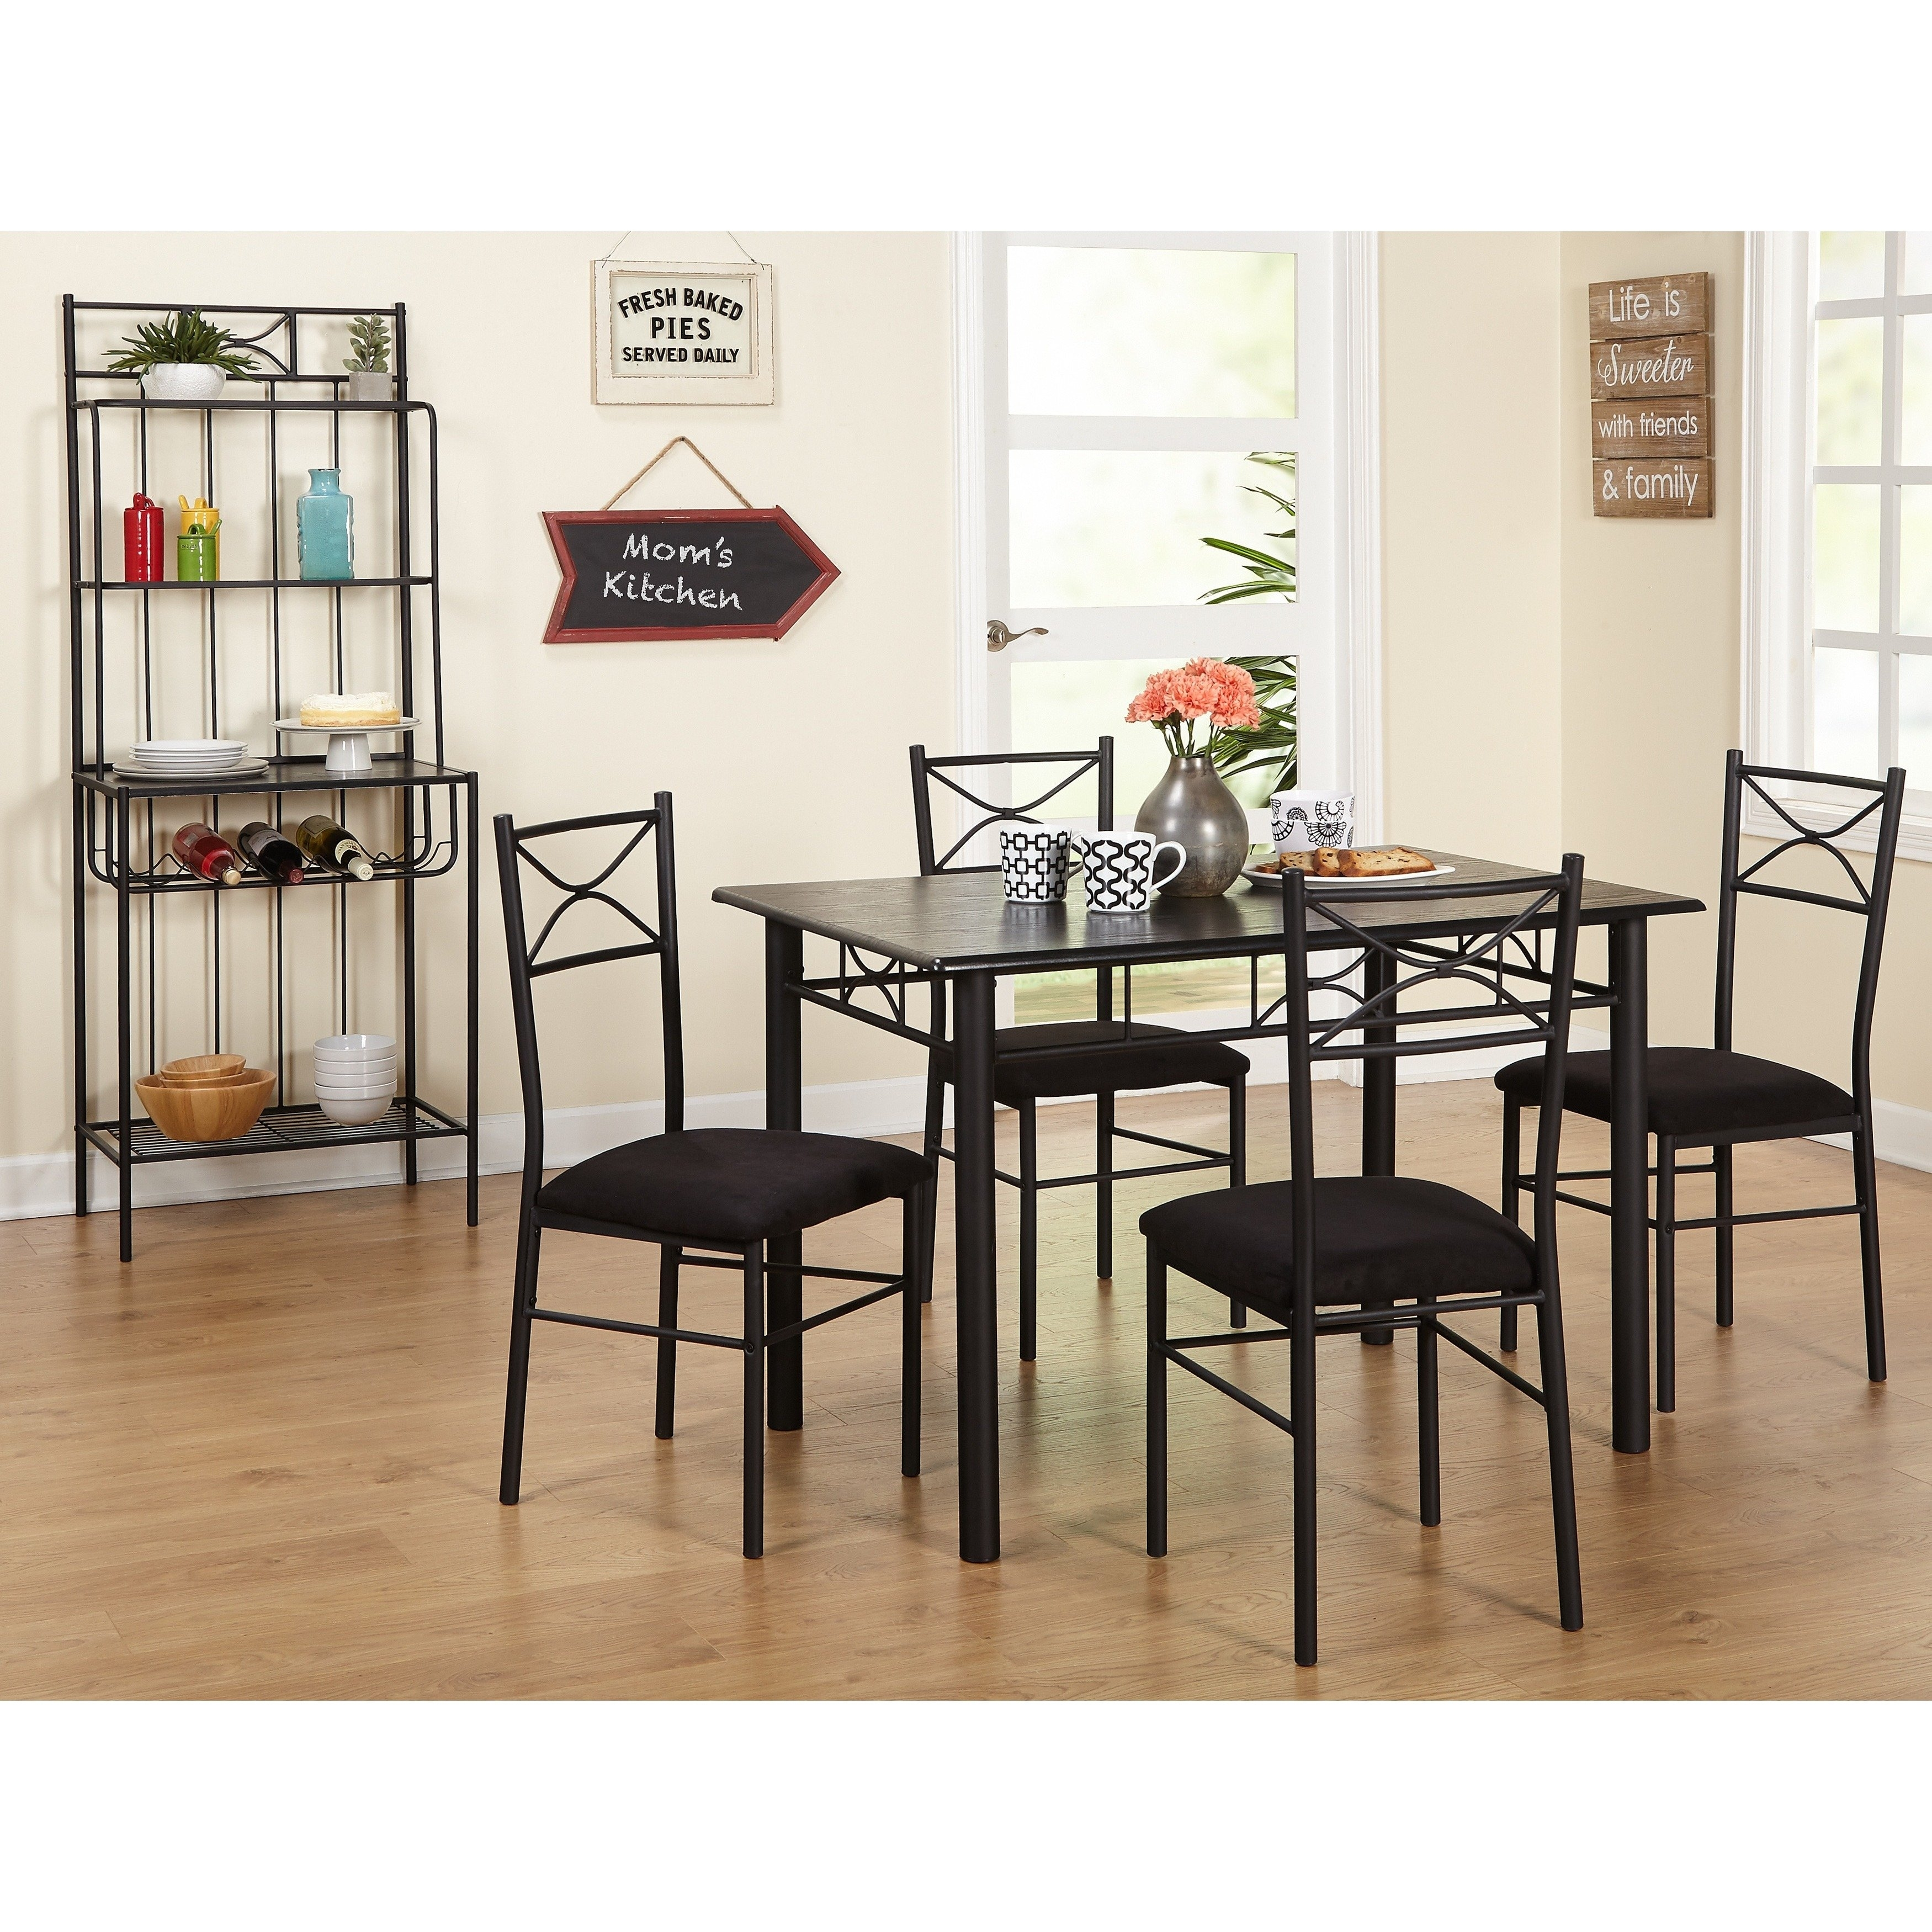 Shop Simple Living Valencia 6 Piece Metal Dining Set With Baker's Regarding Recent Valencia 3 Piece Counter Sets With Bench (View 5 of 20)